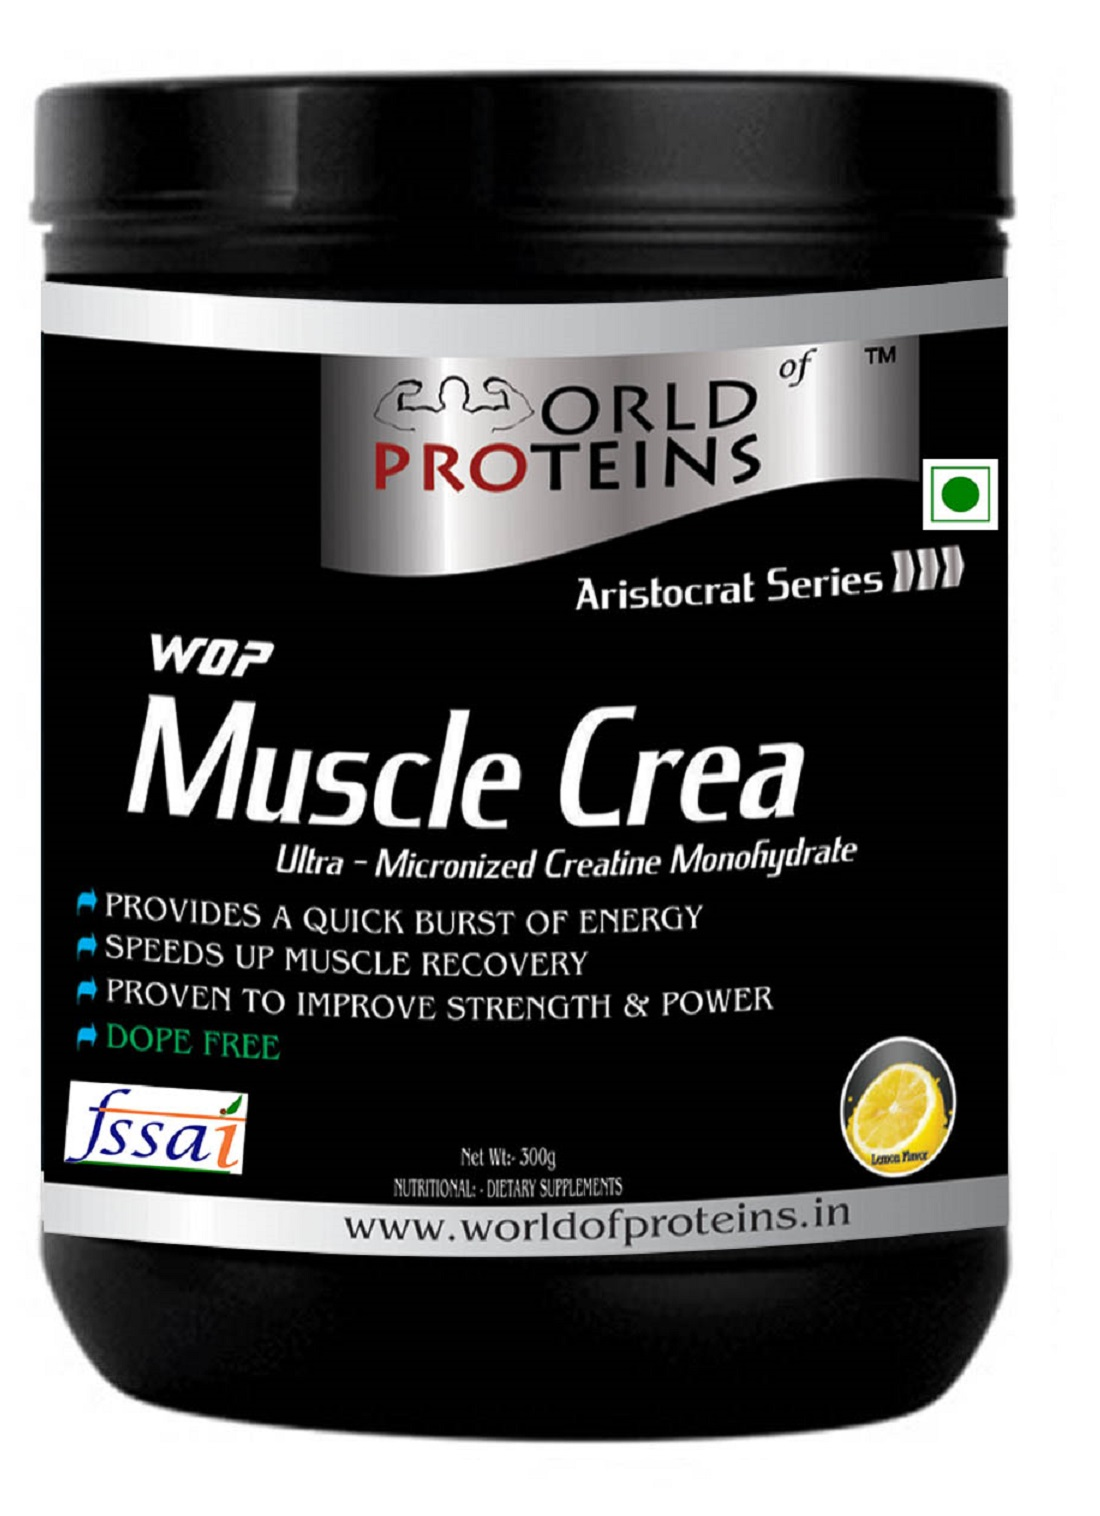 size_031901_WOP_MUSCLE_CREA_Lemon_copy.jpg